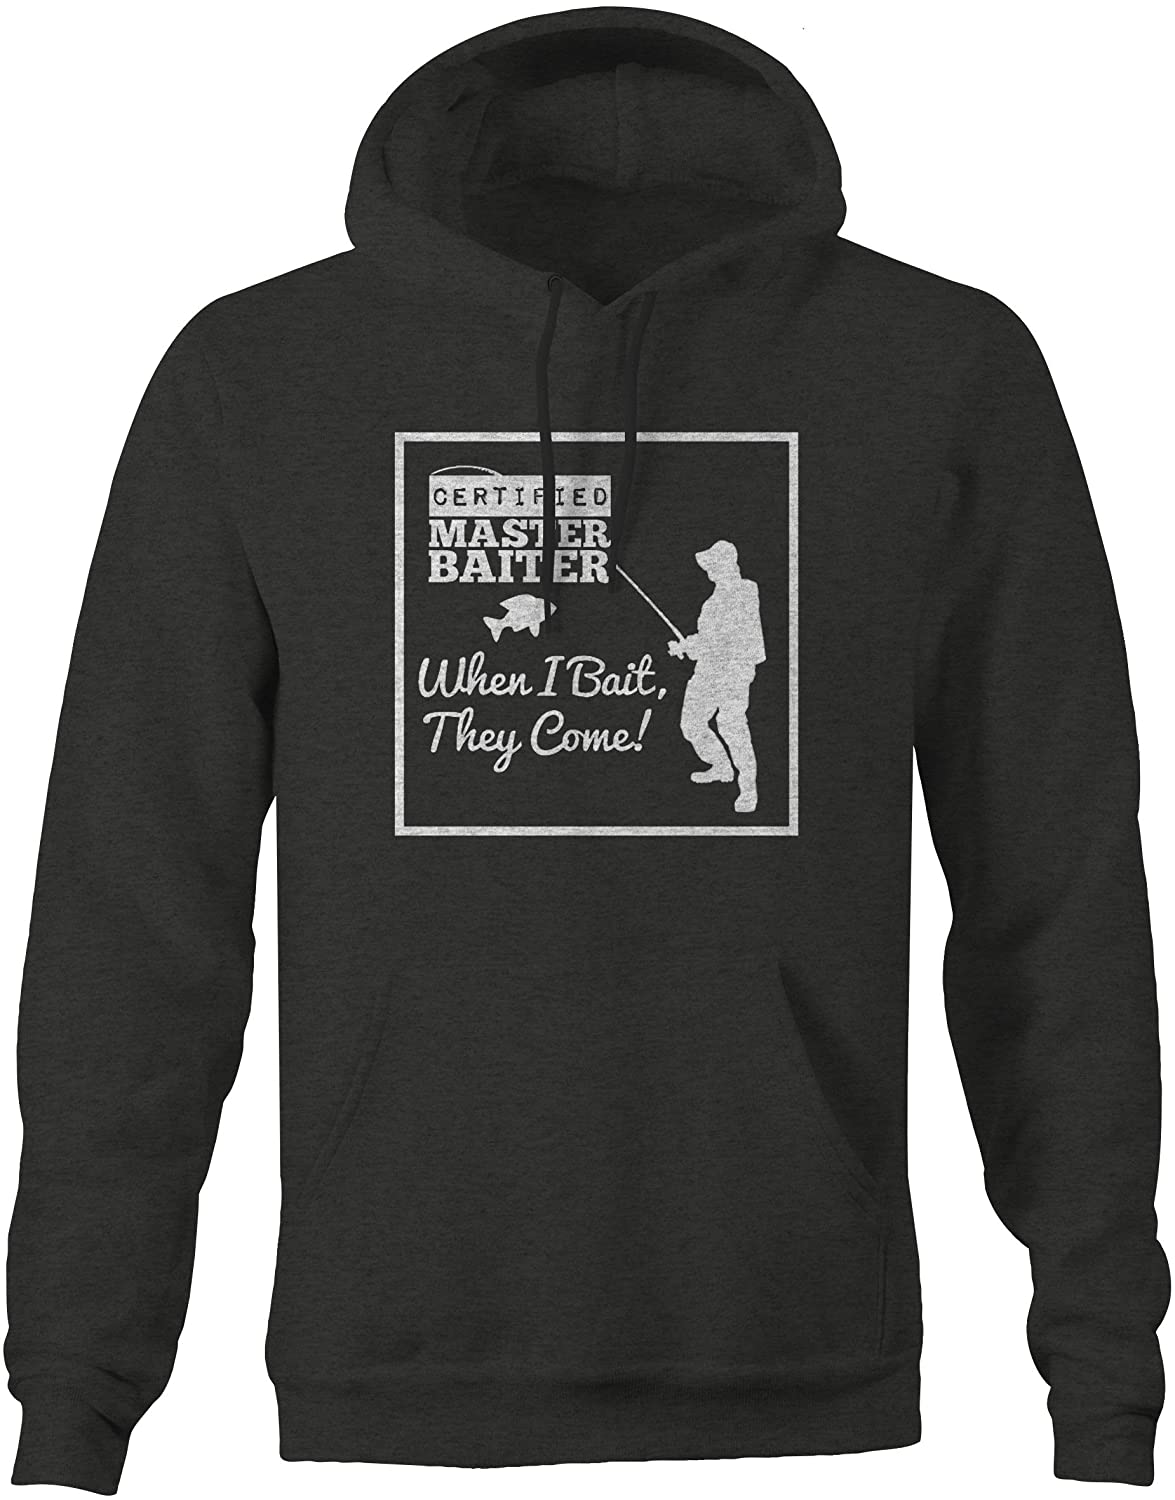 Certified Master Baiter When I Bait They Come Funny Fishing Mens Sweatshirt